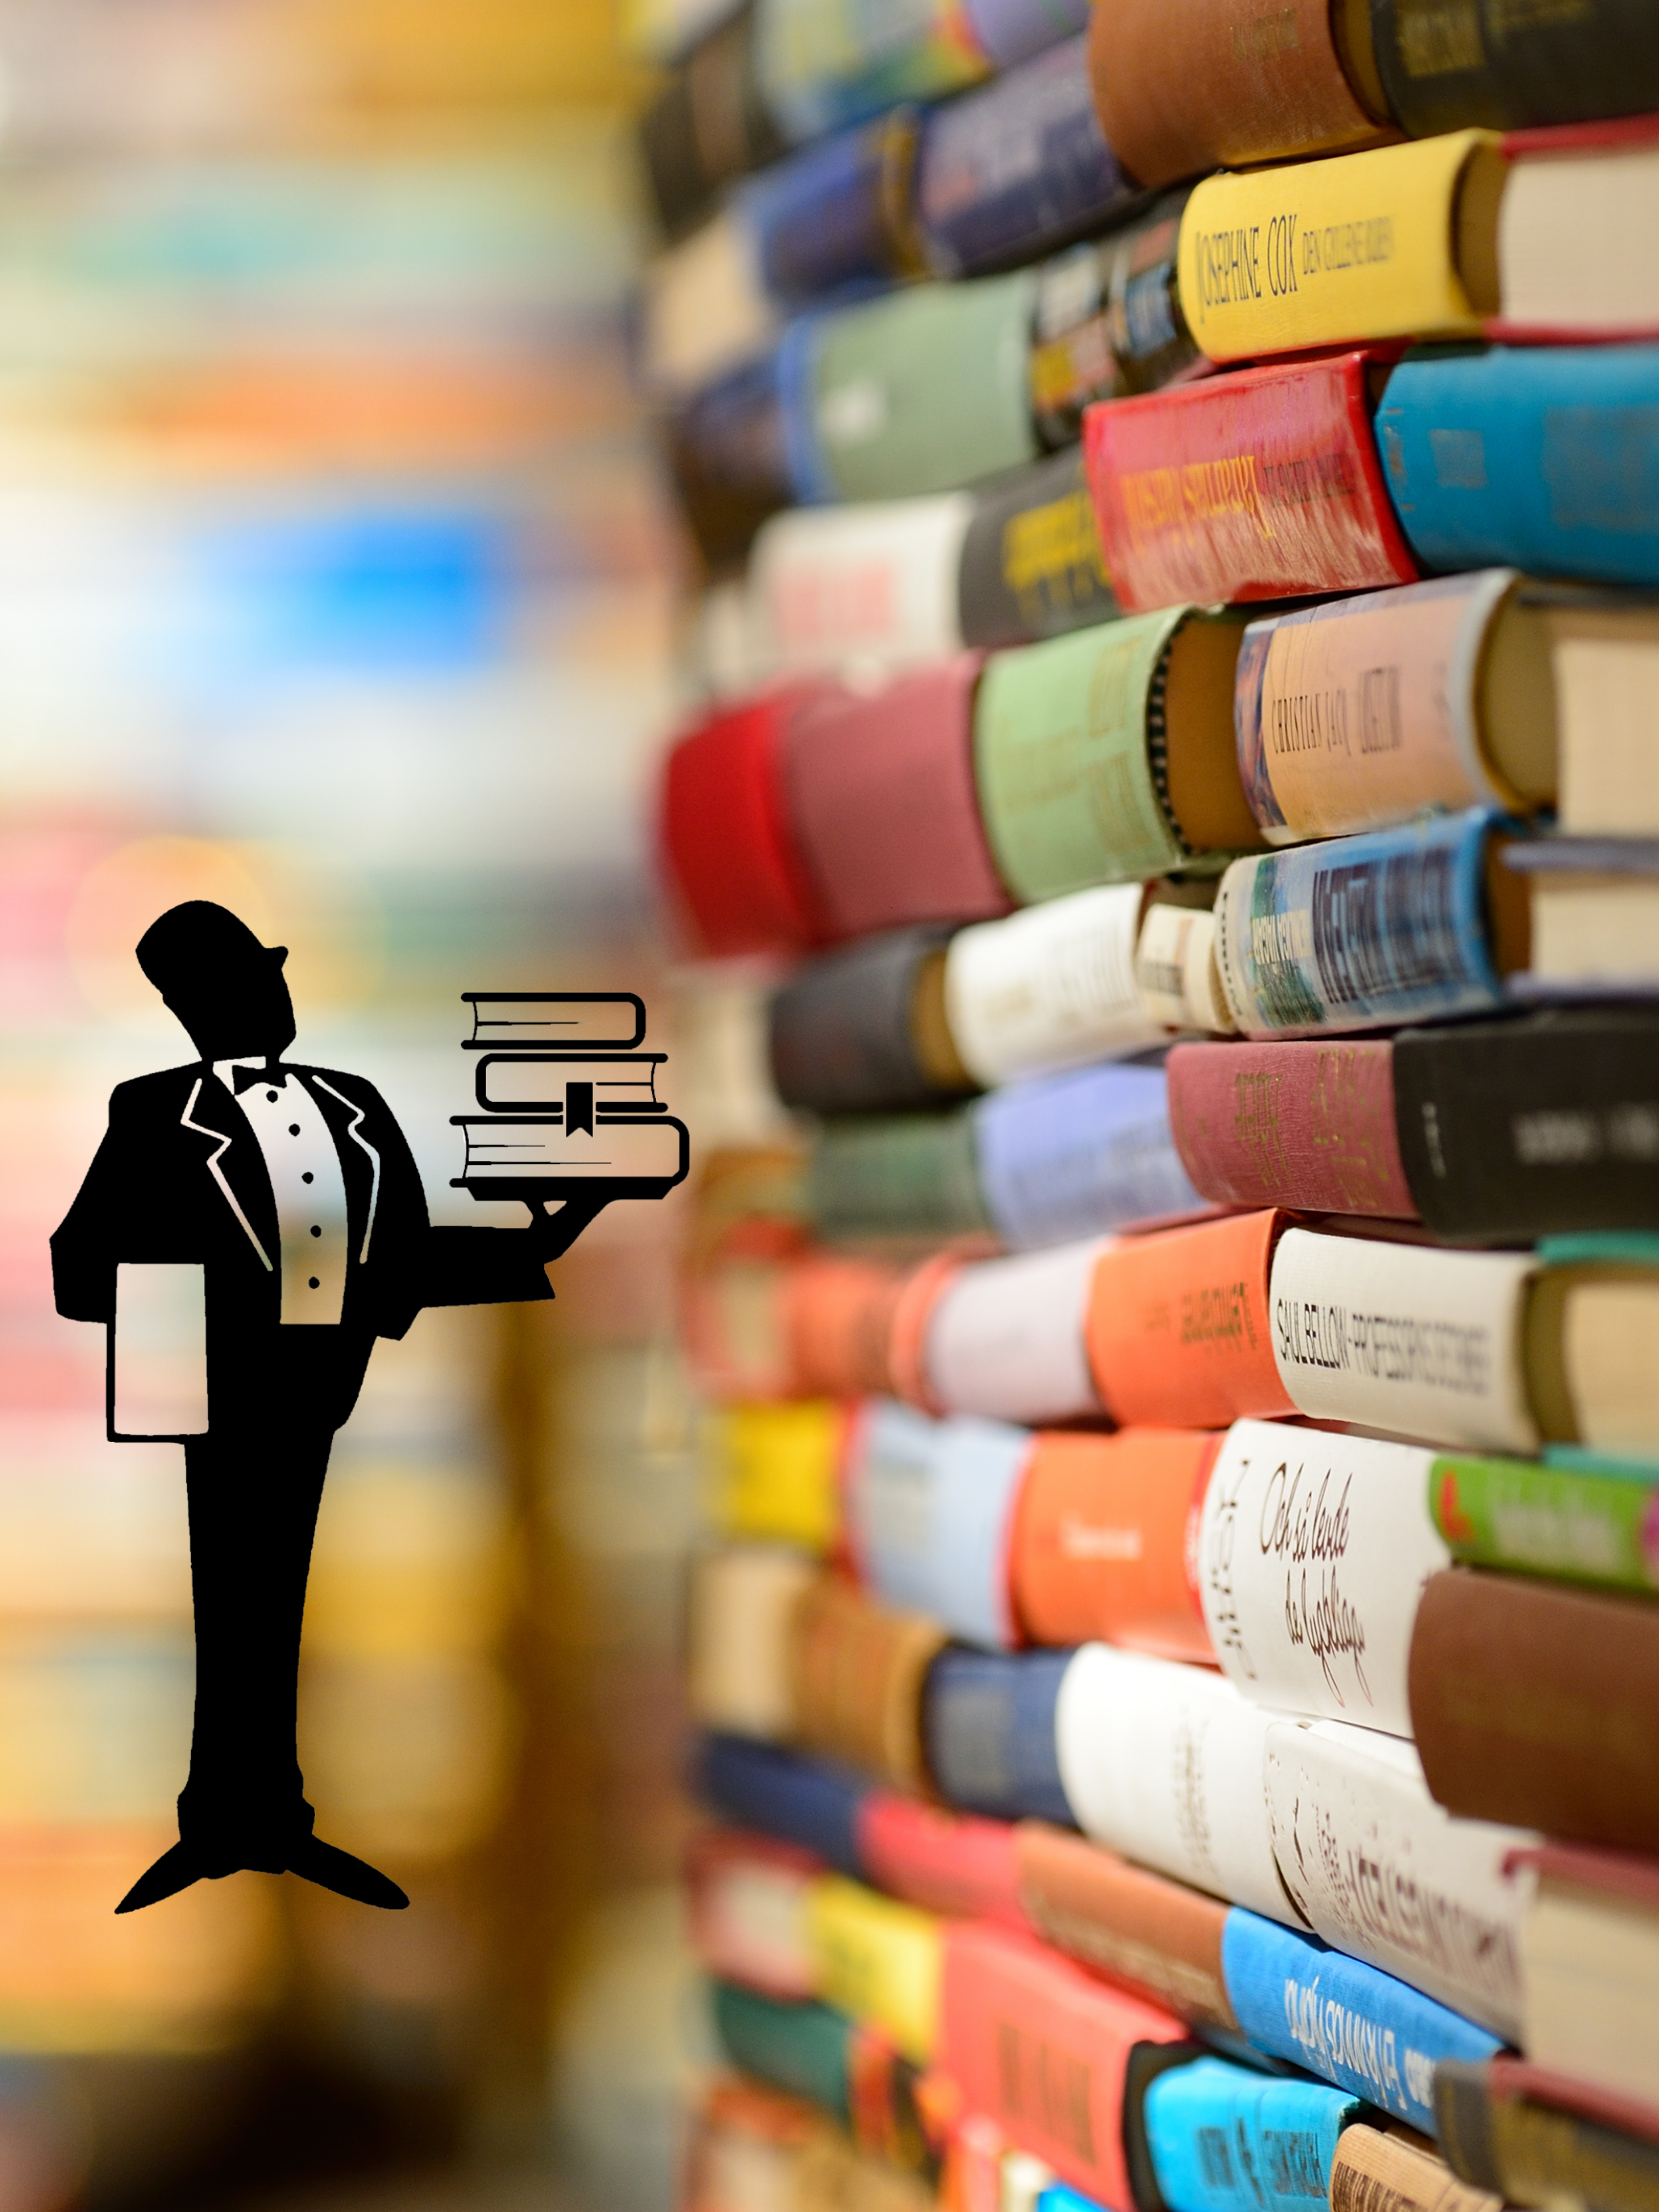 Personal shopper service logo butler holding books on top of background of books